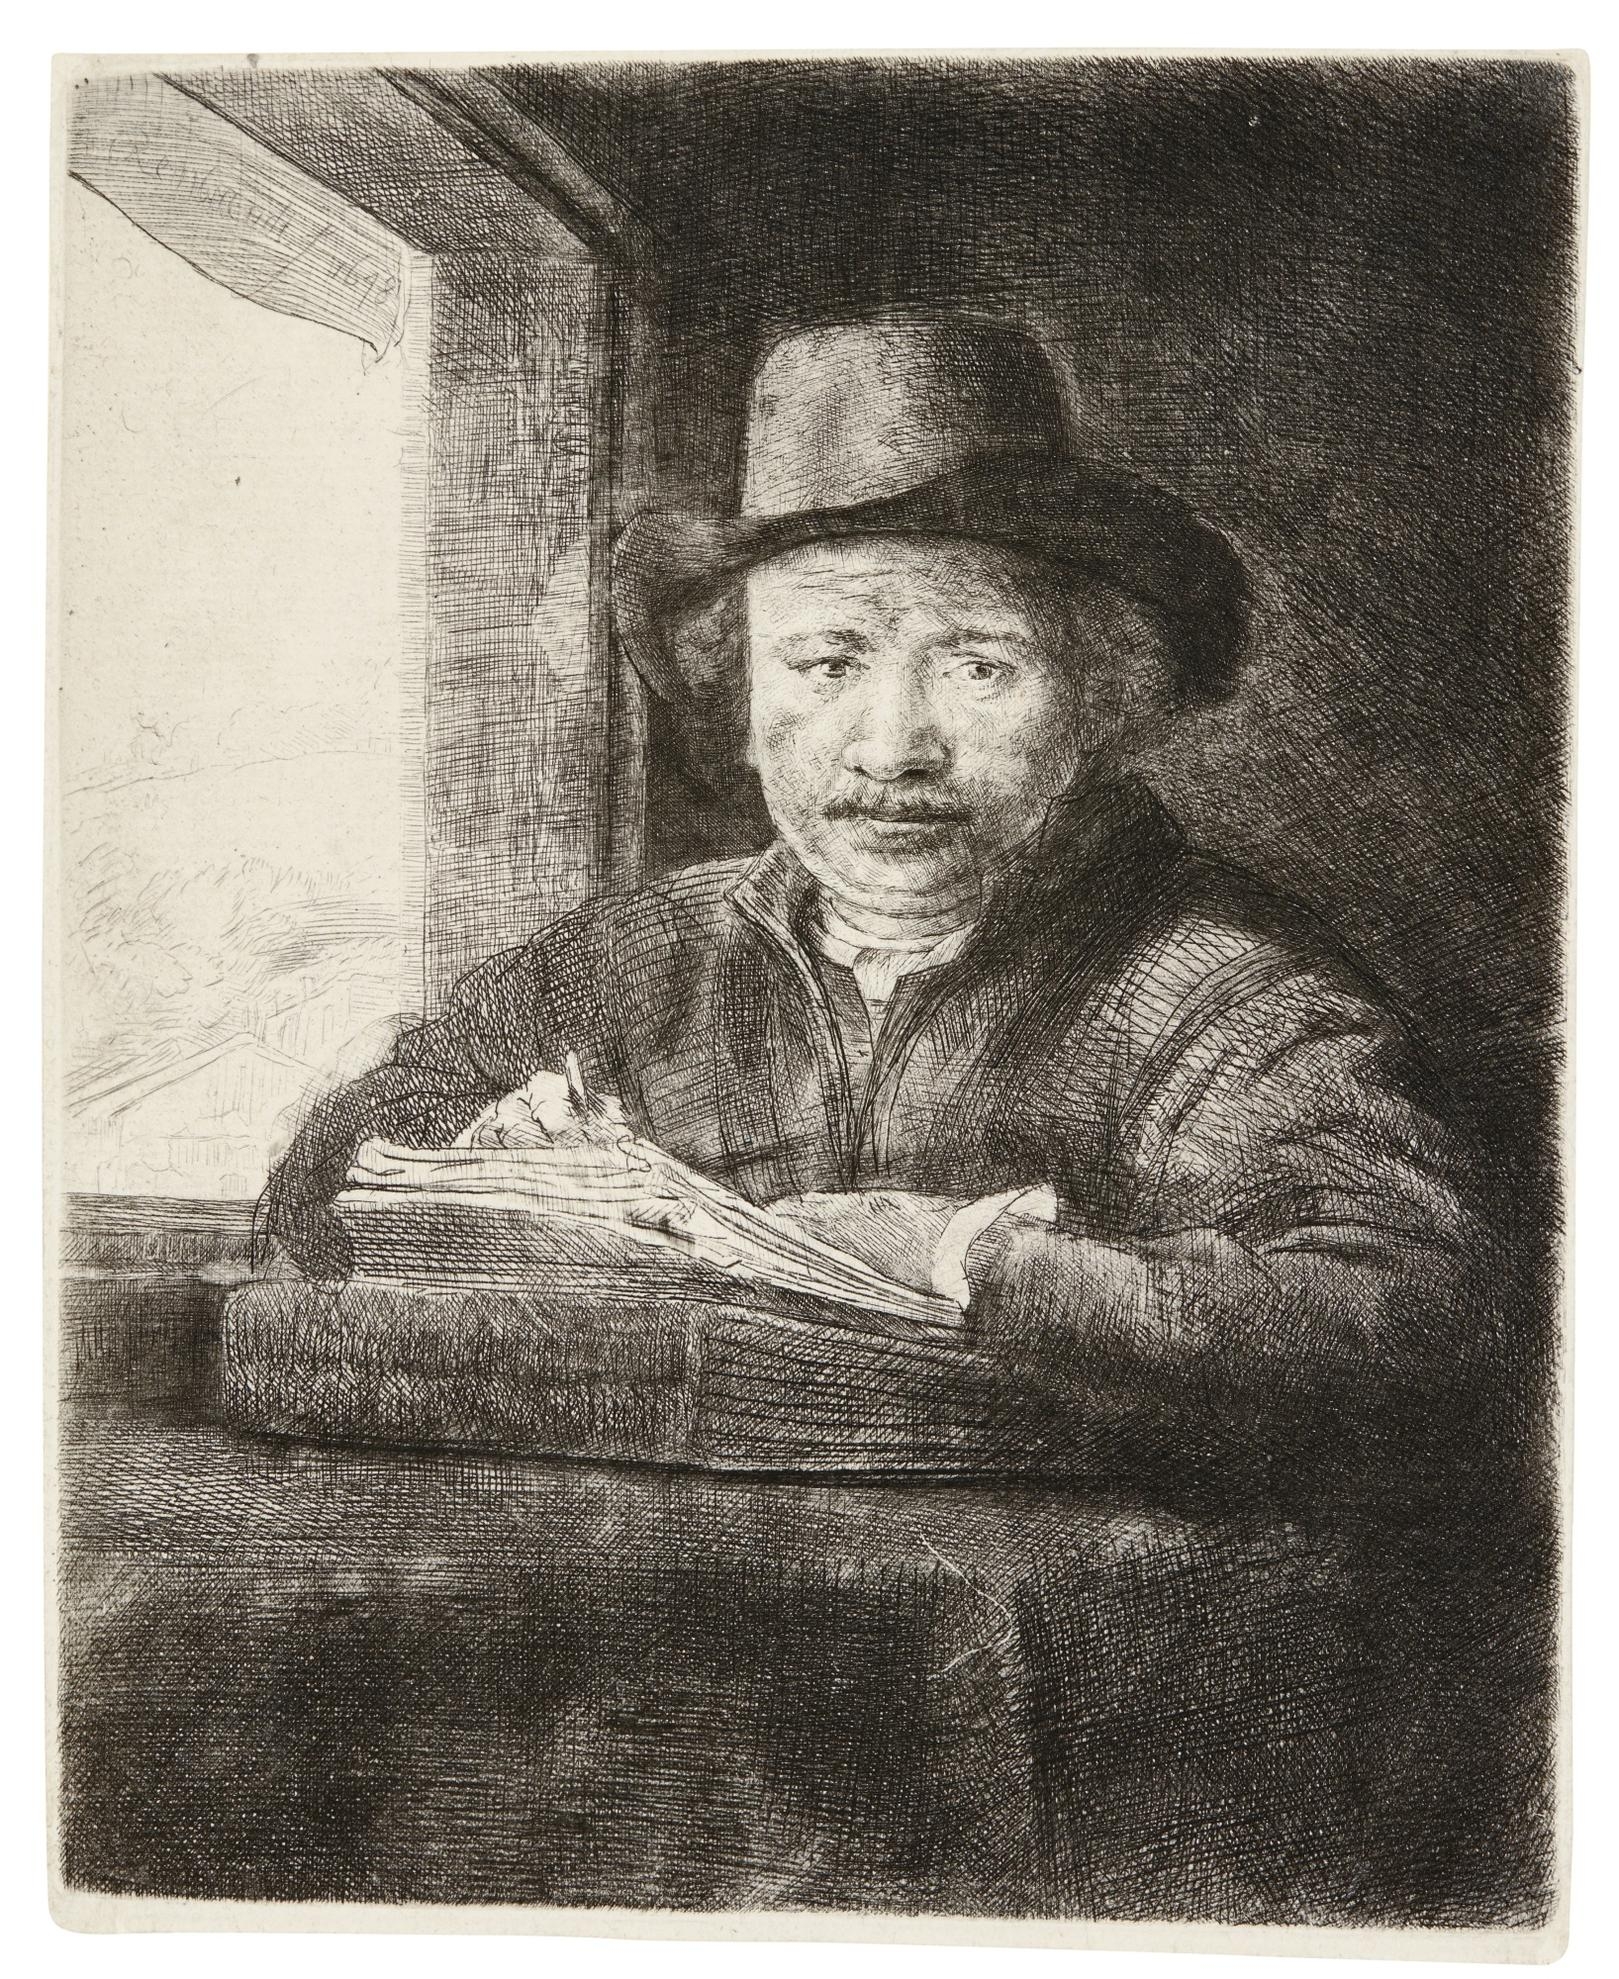 Rembrandt van Rijn-Self-Portrait Etching At A Window (B., Holl. 22; New Holl. 240; H. 229)-1648